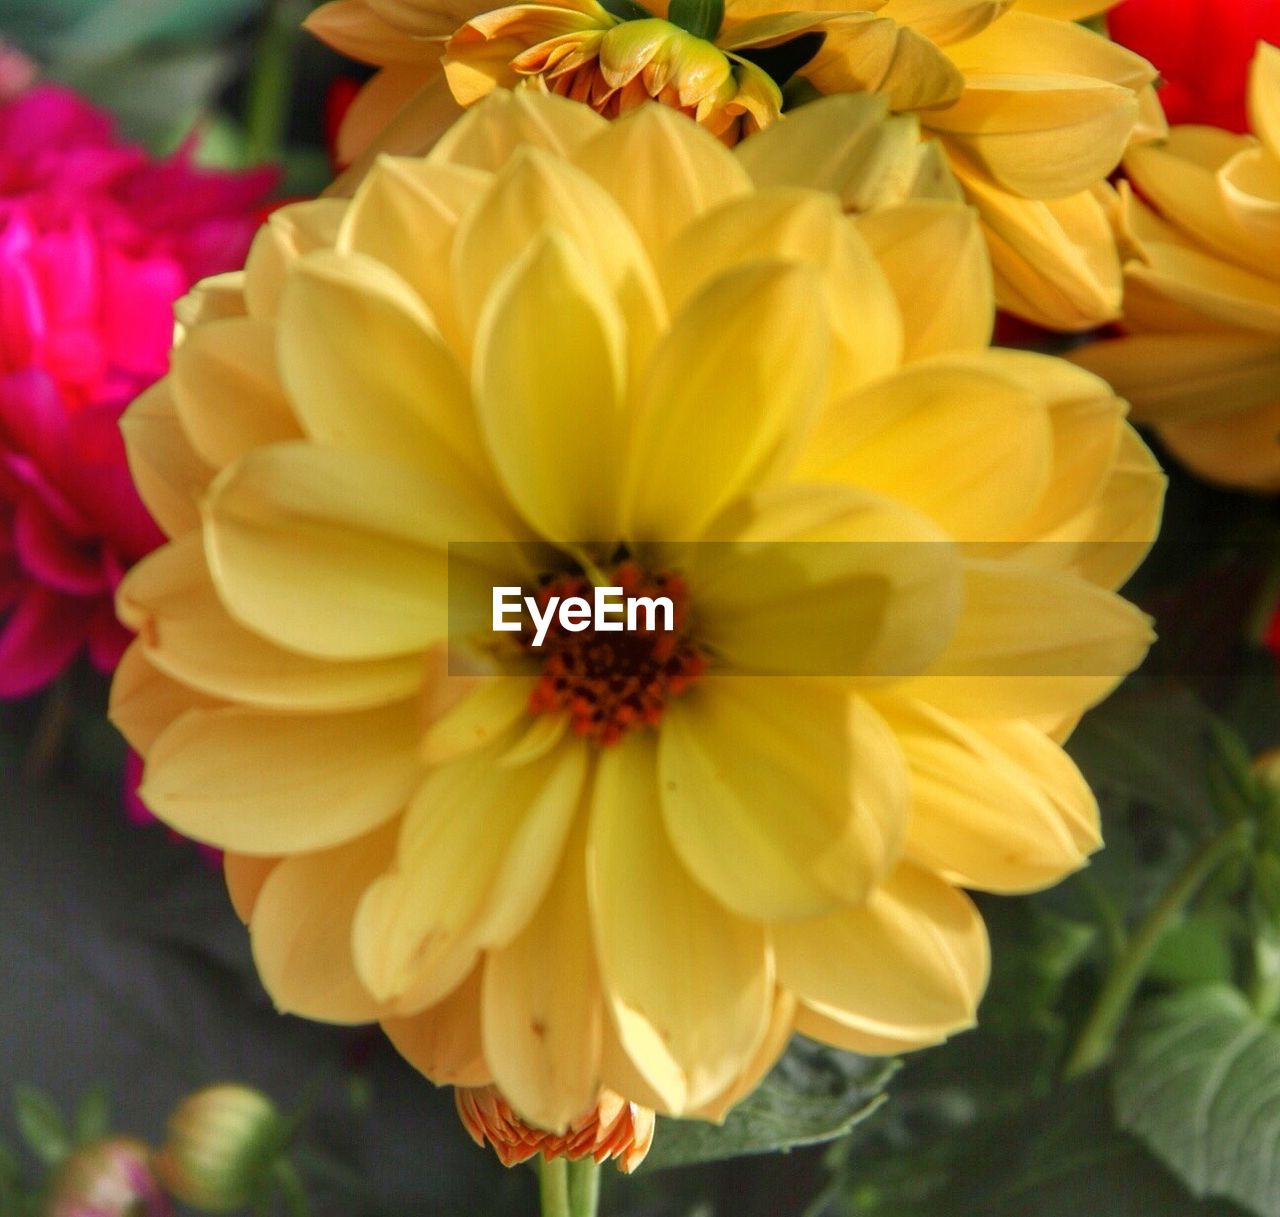 flower, petal, flower head, fragility, freshness, yellow, beauty in nature, blooming, growth, nature, close-up, plant, day, outdoors, no people